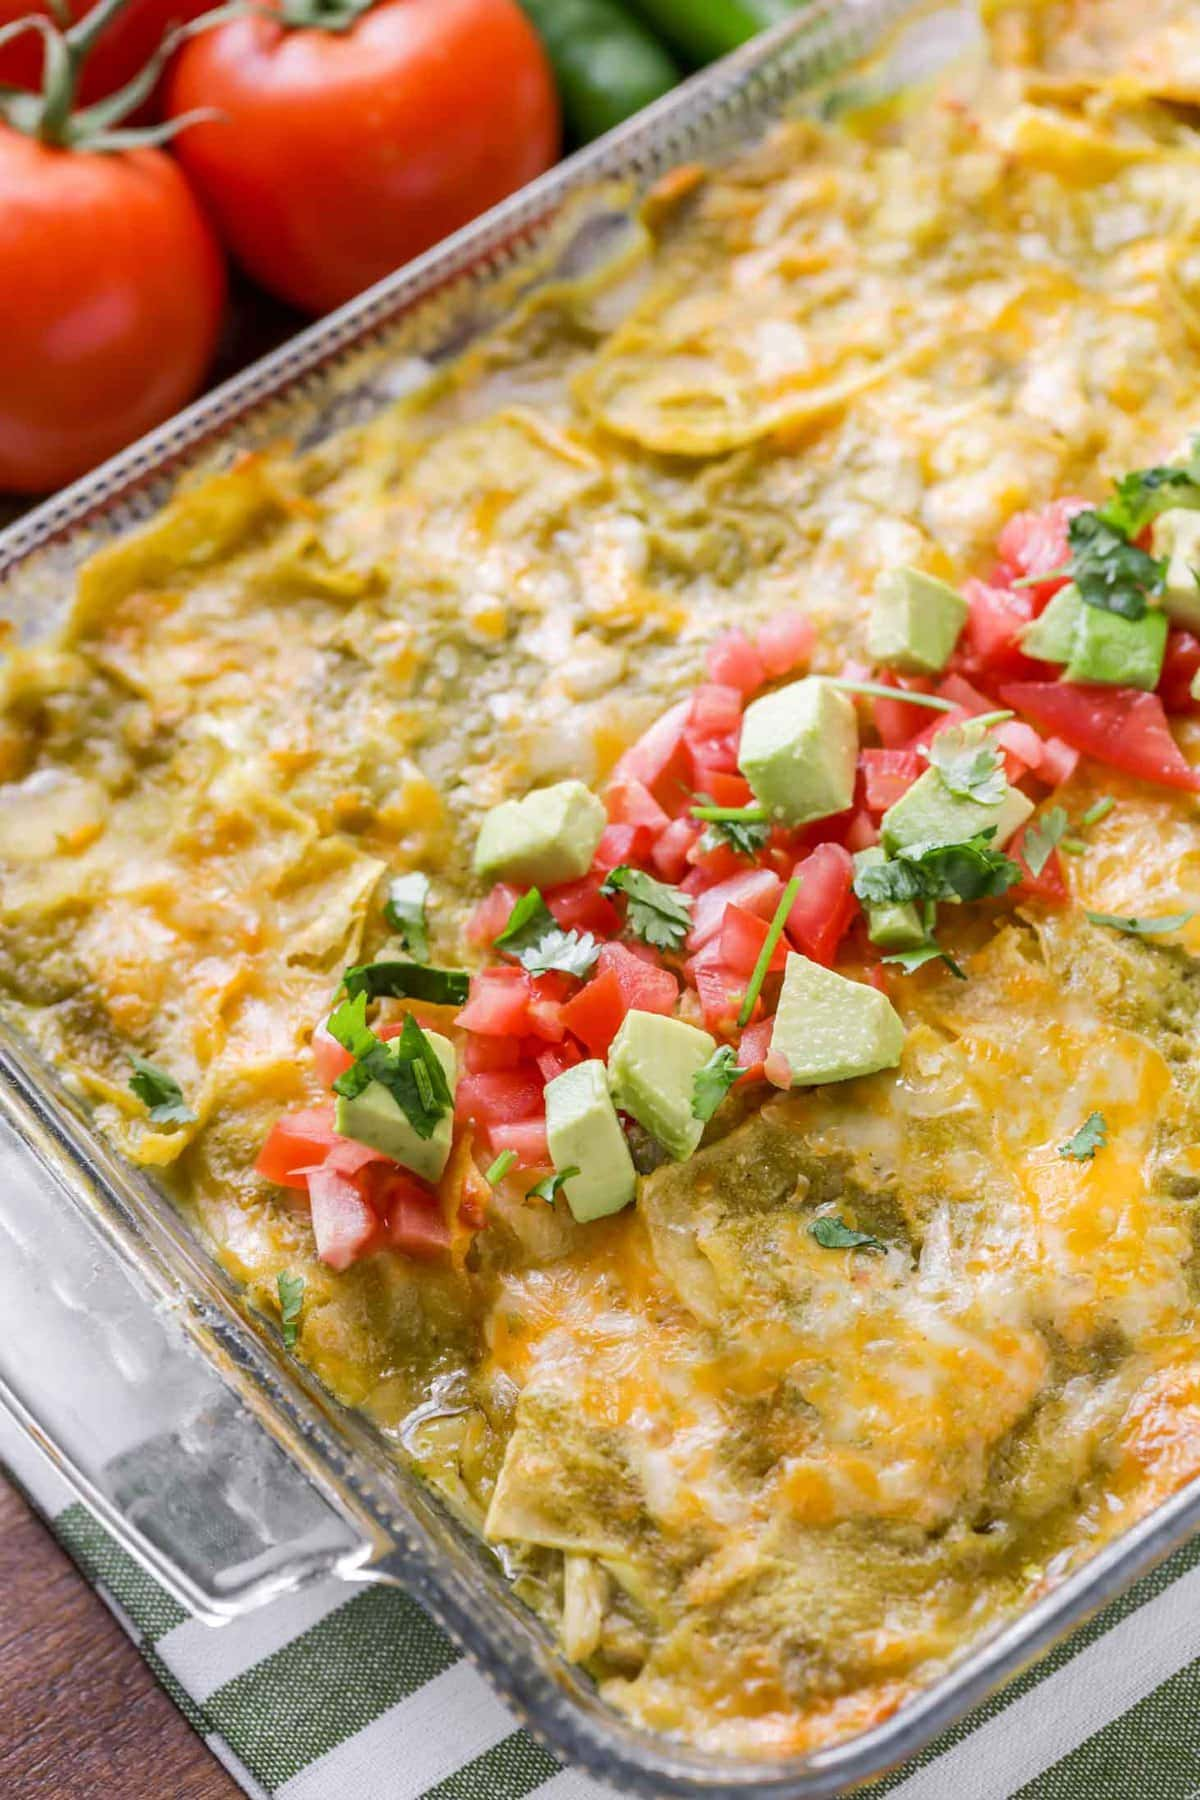 Chicken enchilada casserole with fresh toppings